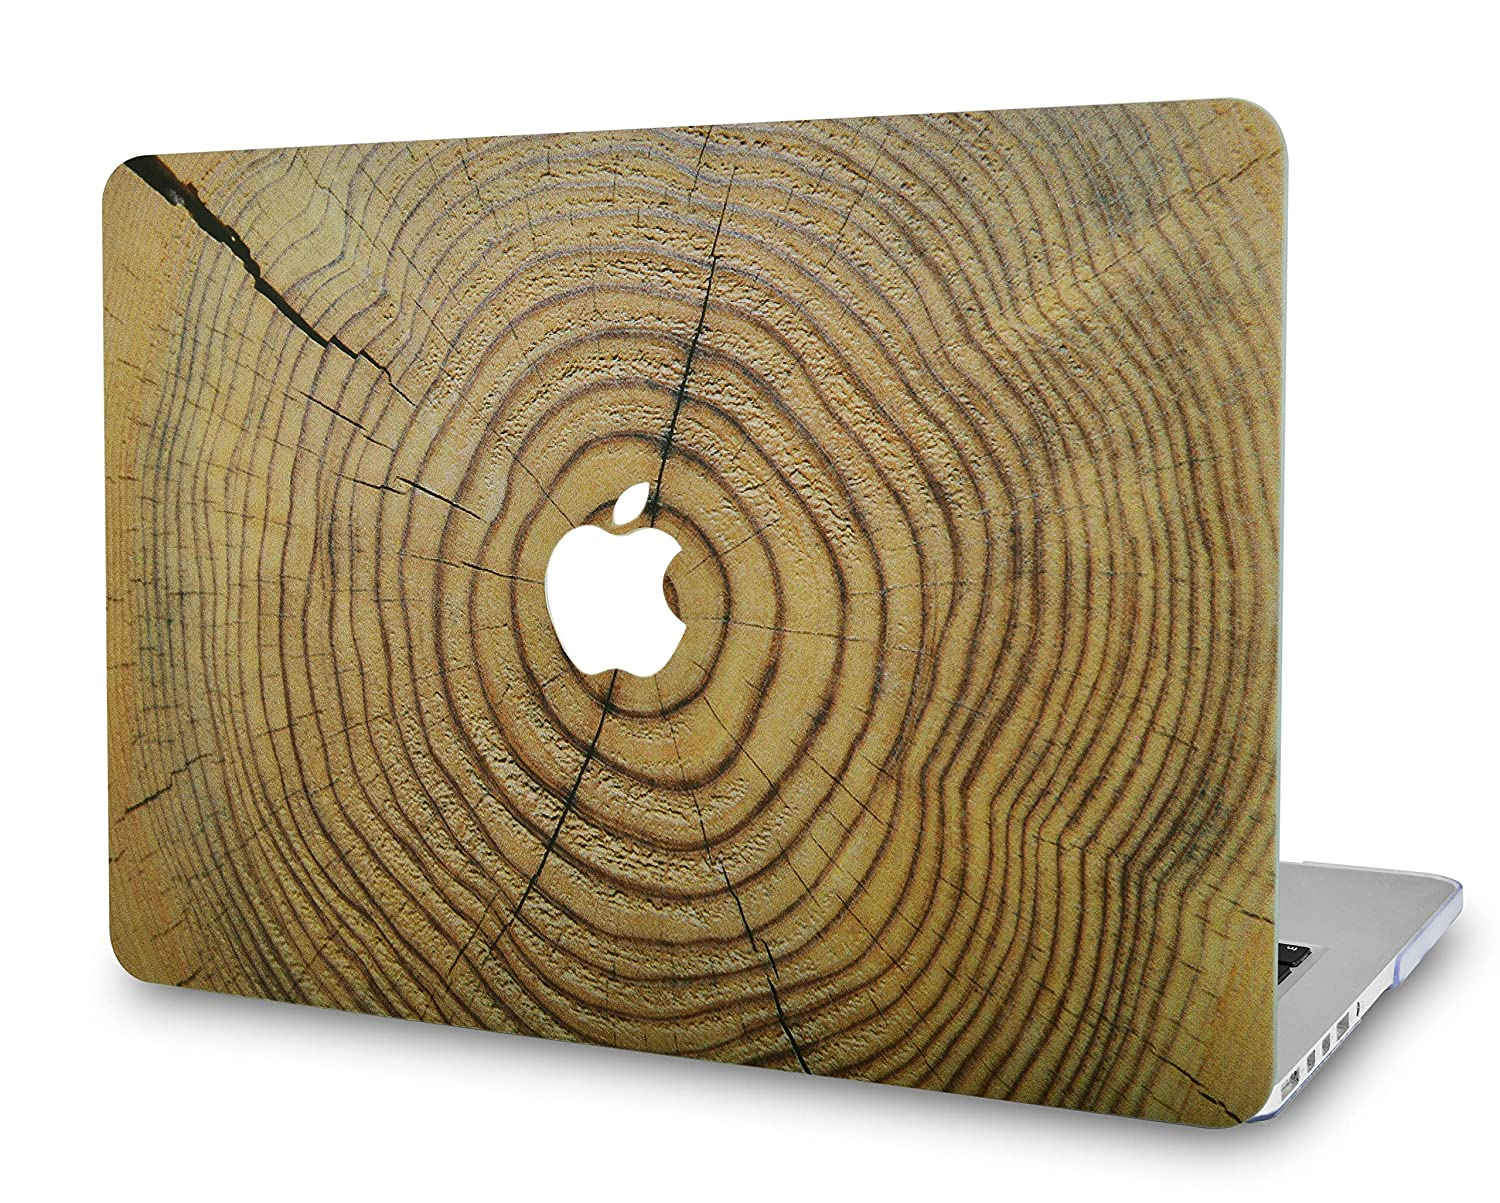 KECC MacBook Air 13 Pulgadas Funda Dura Case Cover MacBook Air 13.3 Ultra Delgado Plástico {A1466/A1369} (Madera Agrietada)